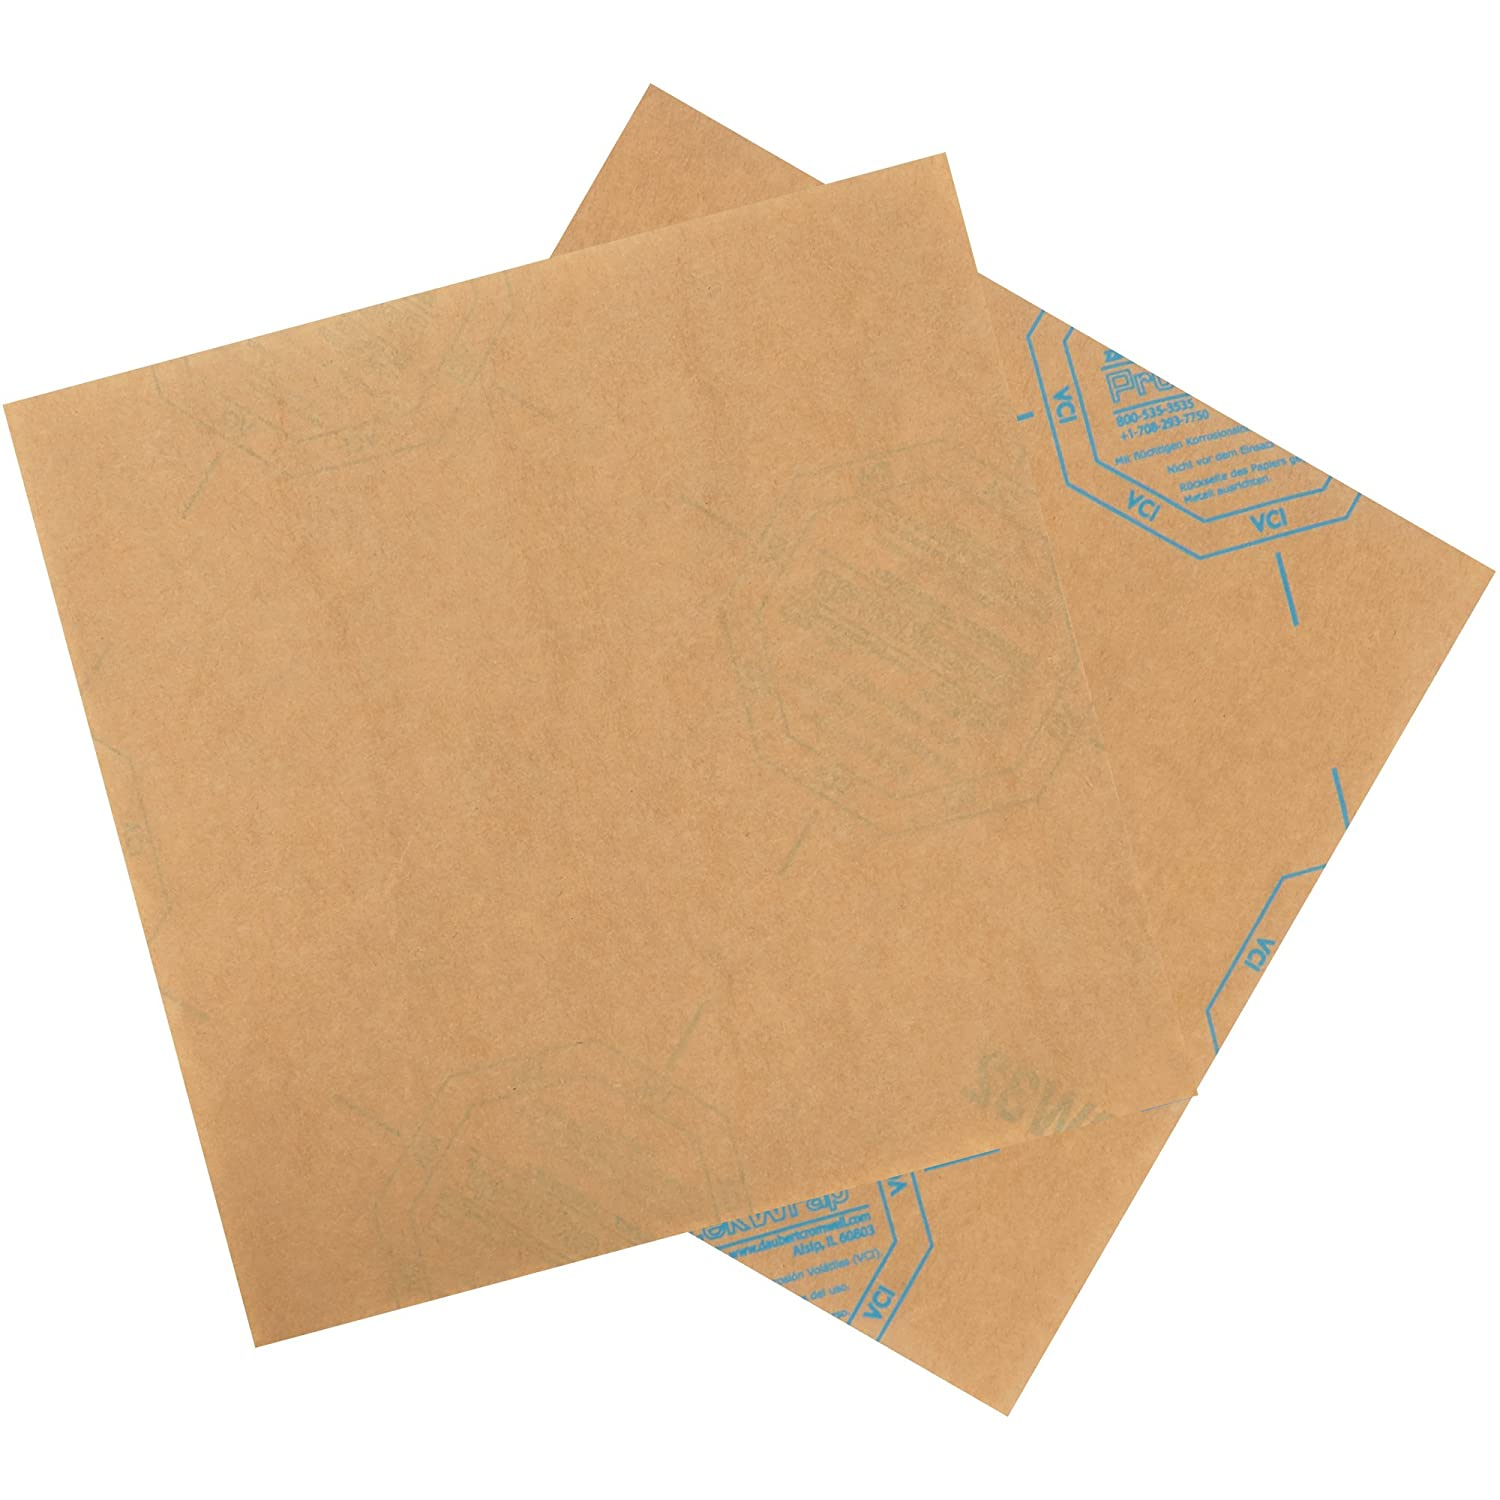 Poly Bag Guy VCI Paper Sheets, 30#, 12